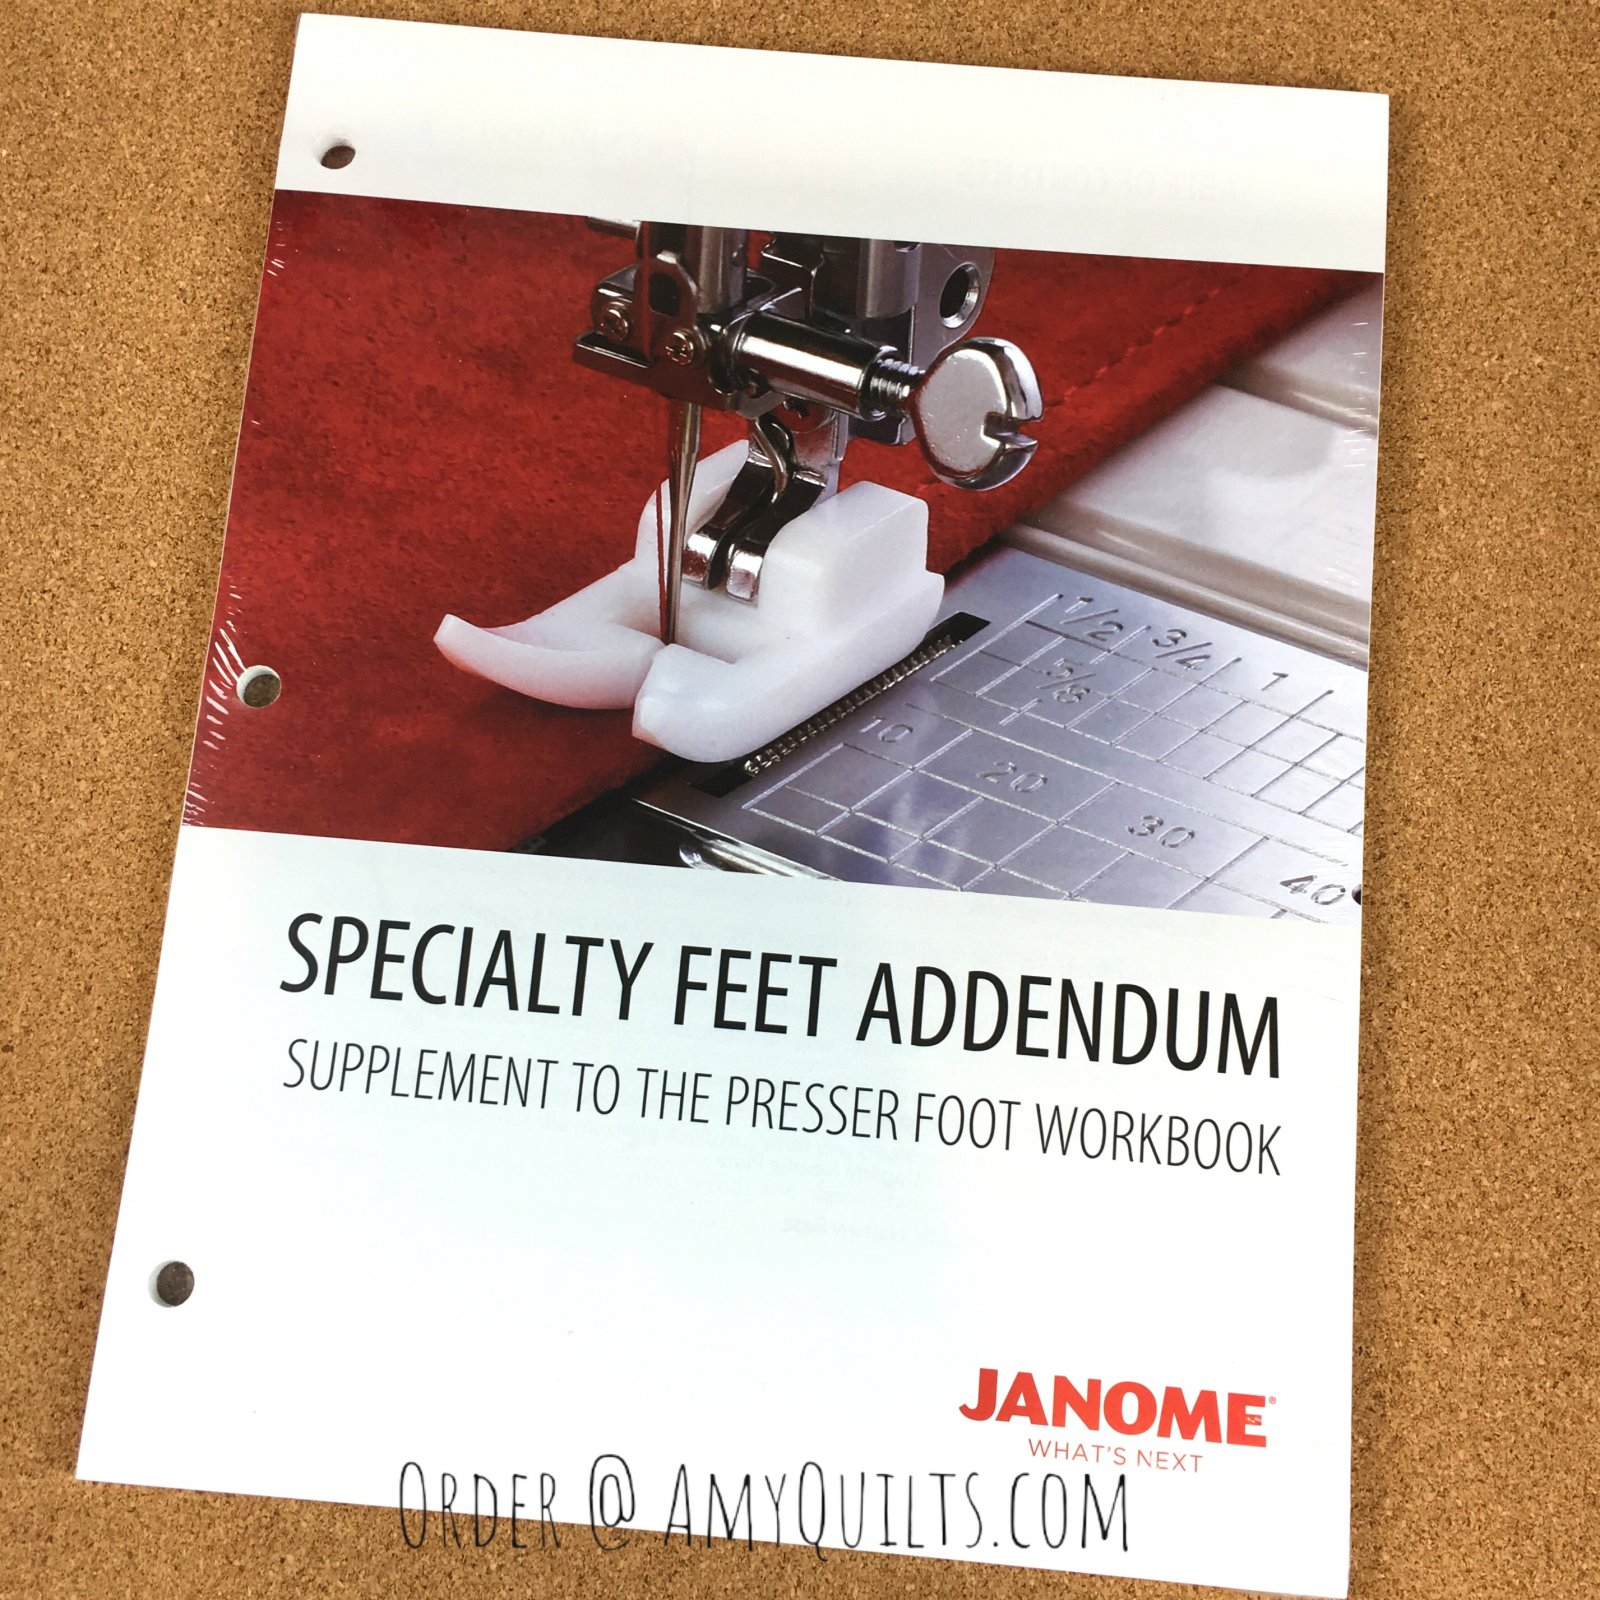 Janome Specialty Feet Addendum